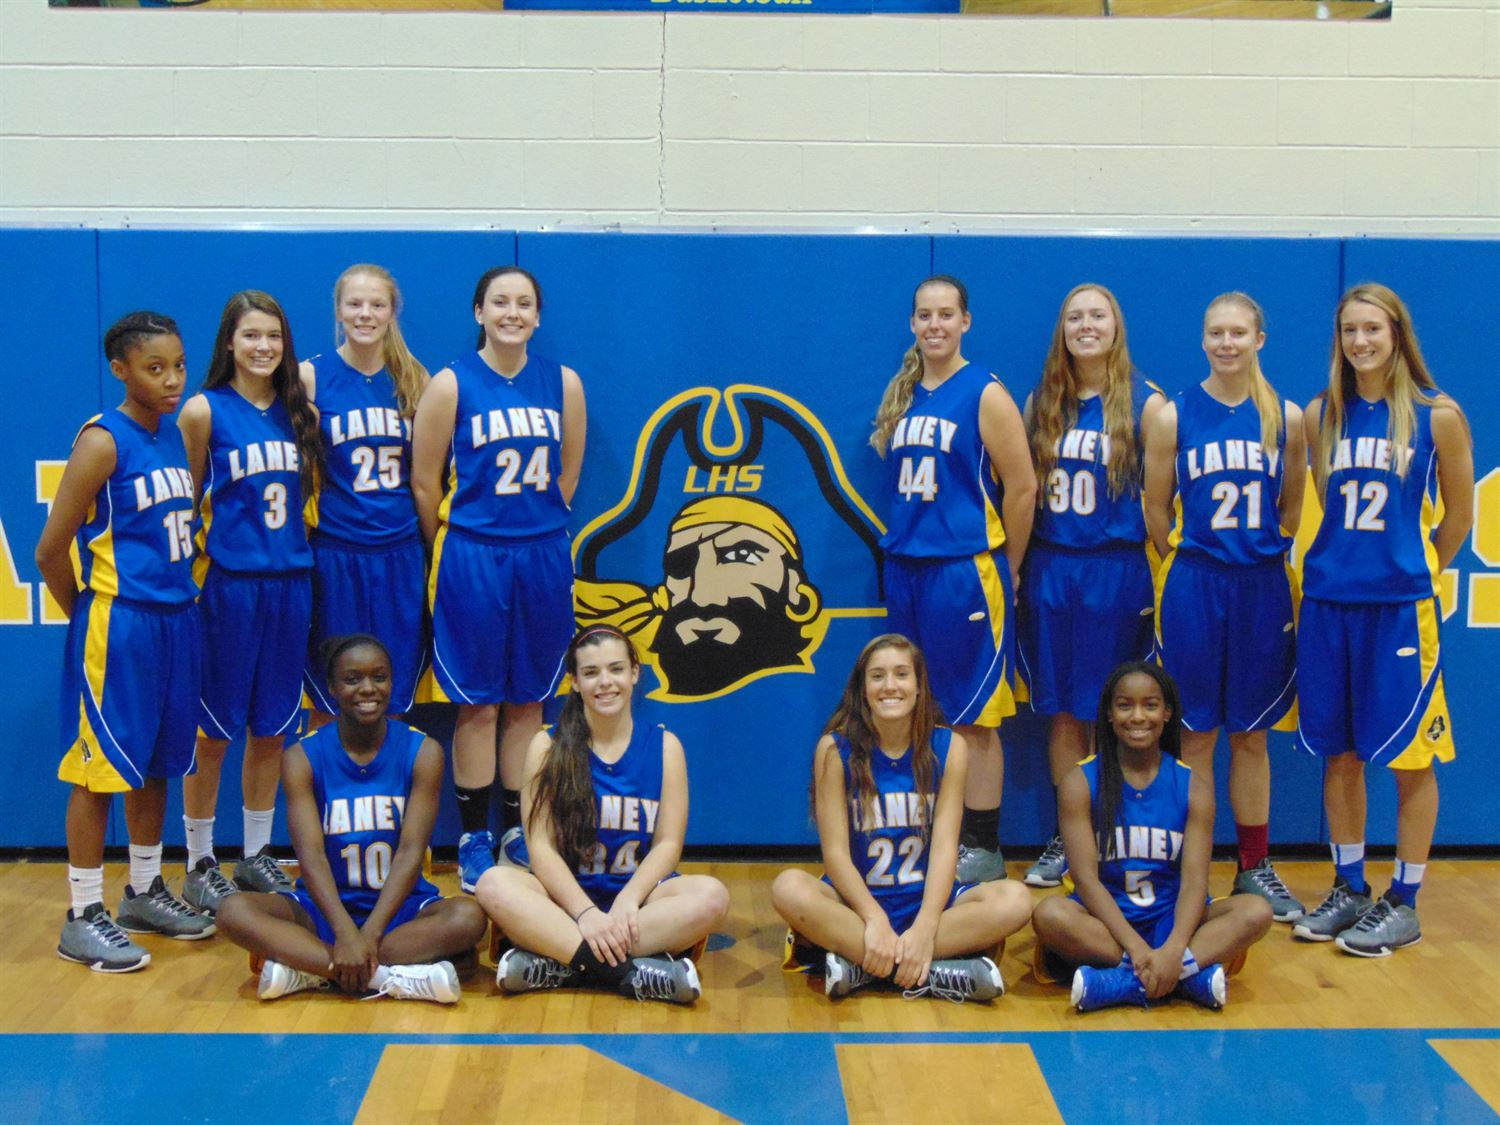 Laney High School - Girls' Varsity Basketball